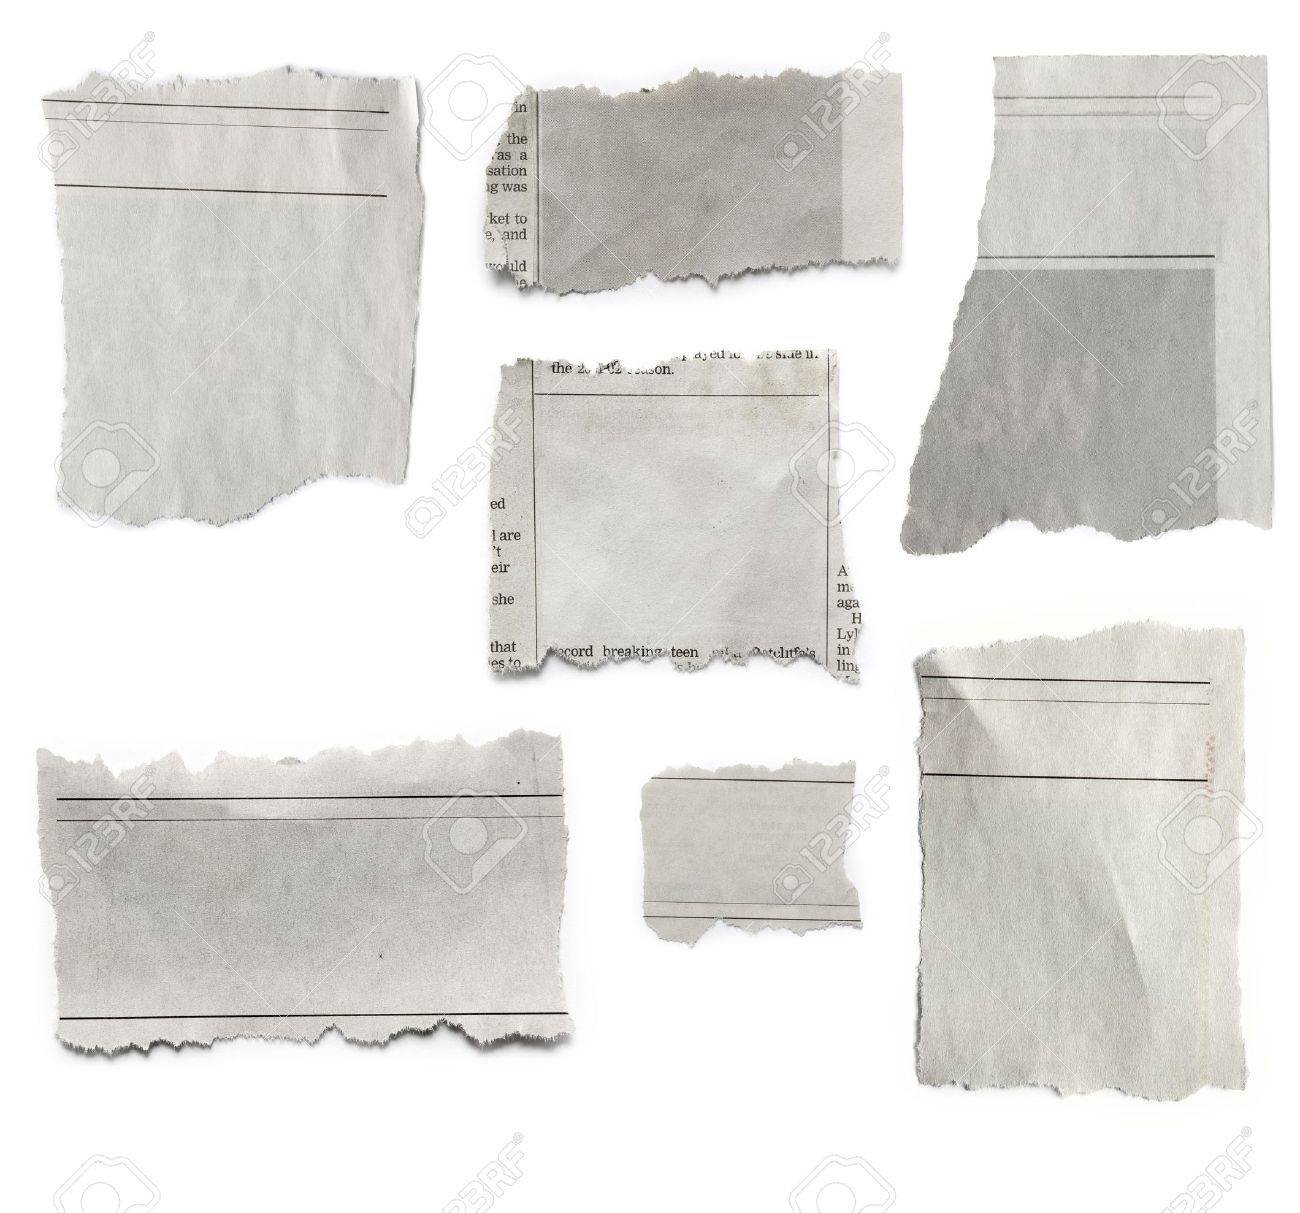 Pieces of torn paper on plain background  Copy space Stock Photo - 21787121